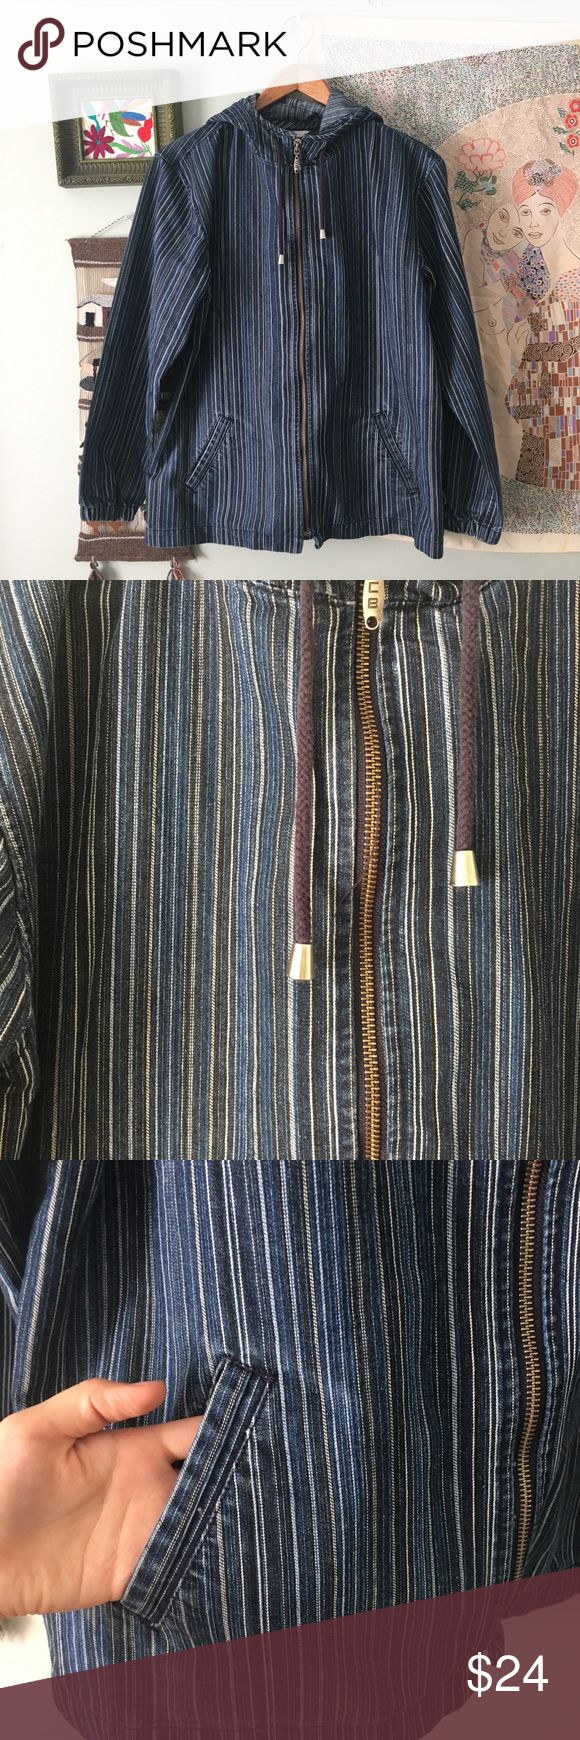 Vintage Striped Denim Zip Up Jacket Very super cool striped denim jacket. Zips up with a hood. Great condition although there was one button on each side that has been removed (pictured) Size M Vintage Jackets & Coats Jean Jackets